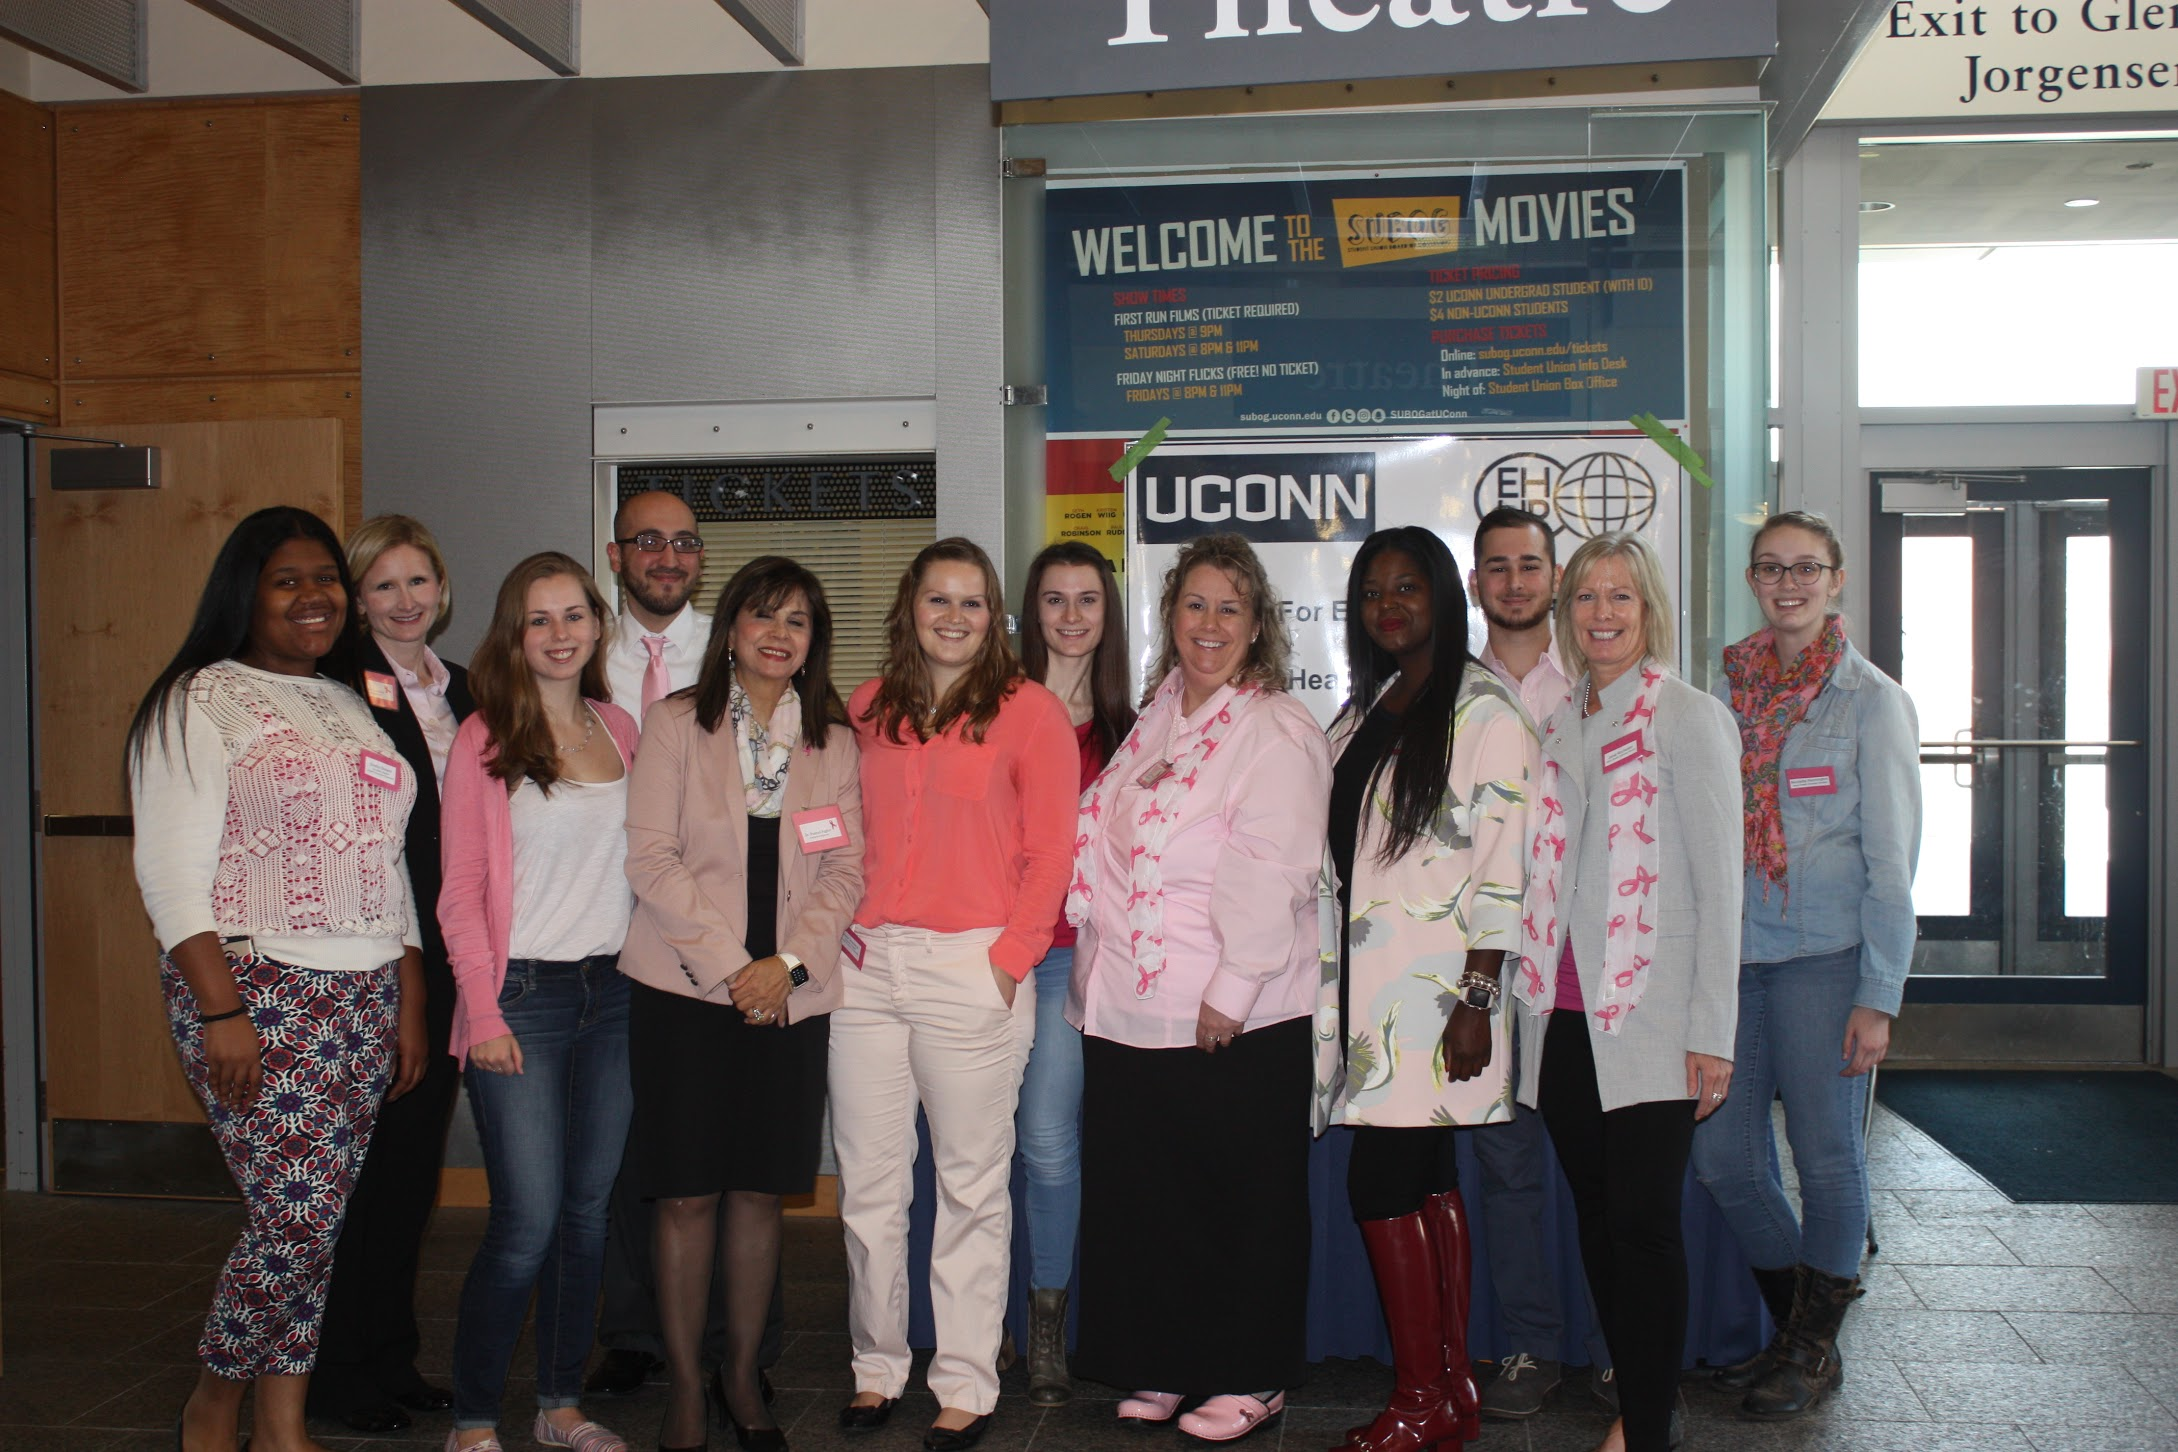 Volunteer and professors who coordinated the even wearing pink to support breast cancer awareness month. Photo Credit to Melissa Depaolo.